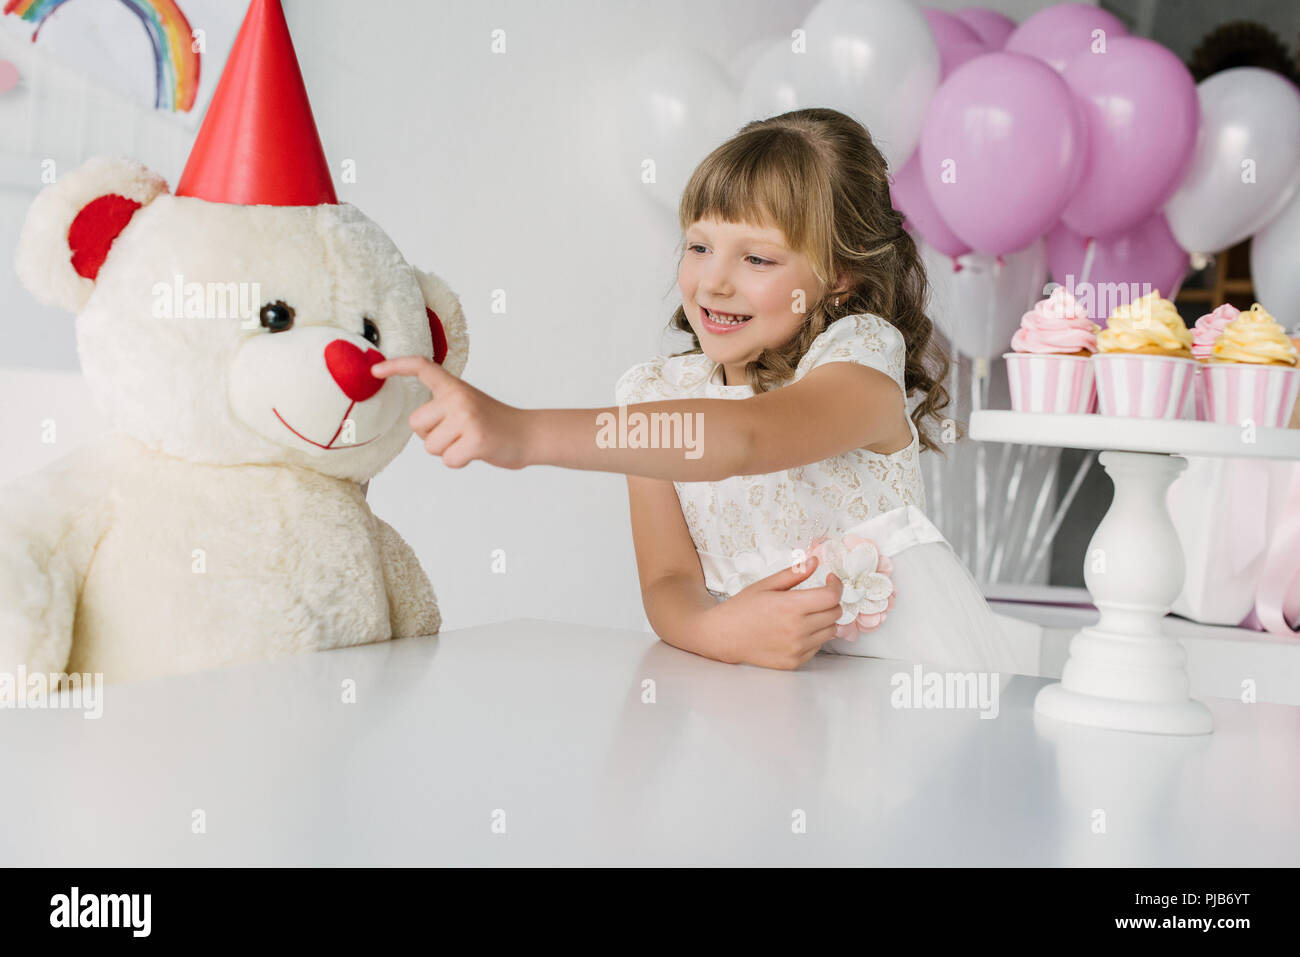 smiling birthday kid touching nose of teddy bear in cone - Stock Image